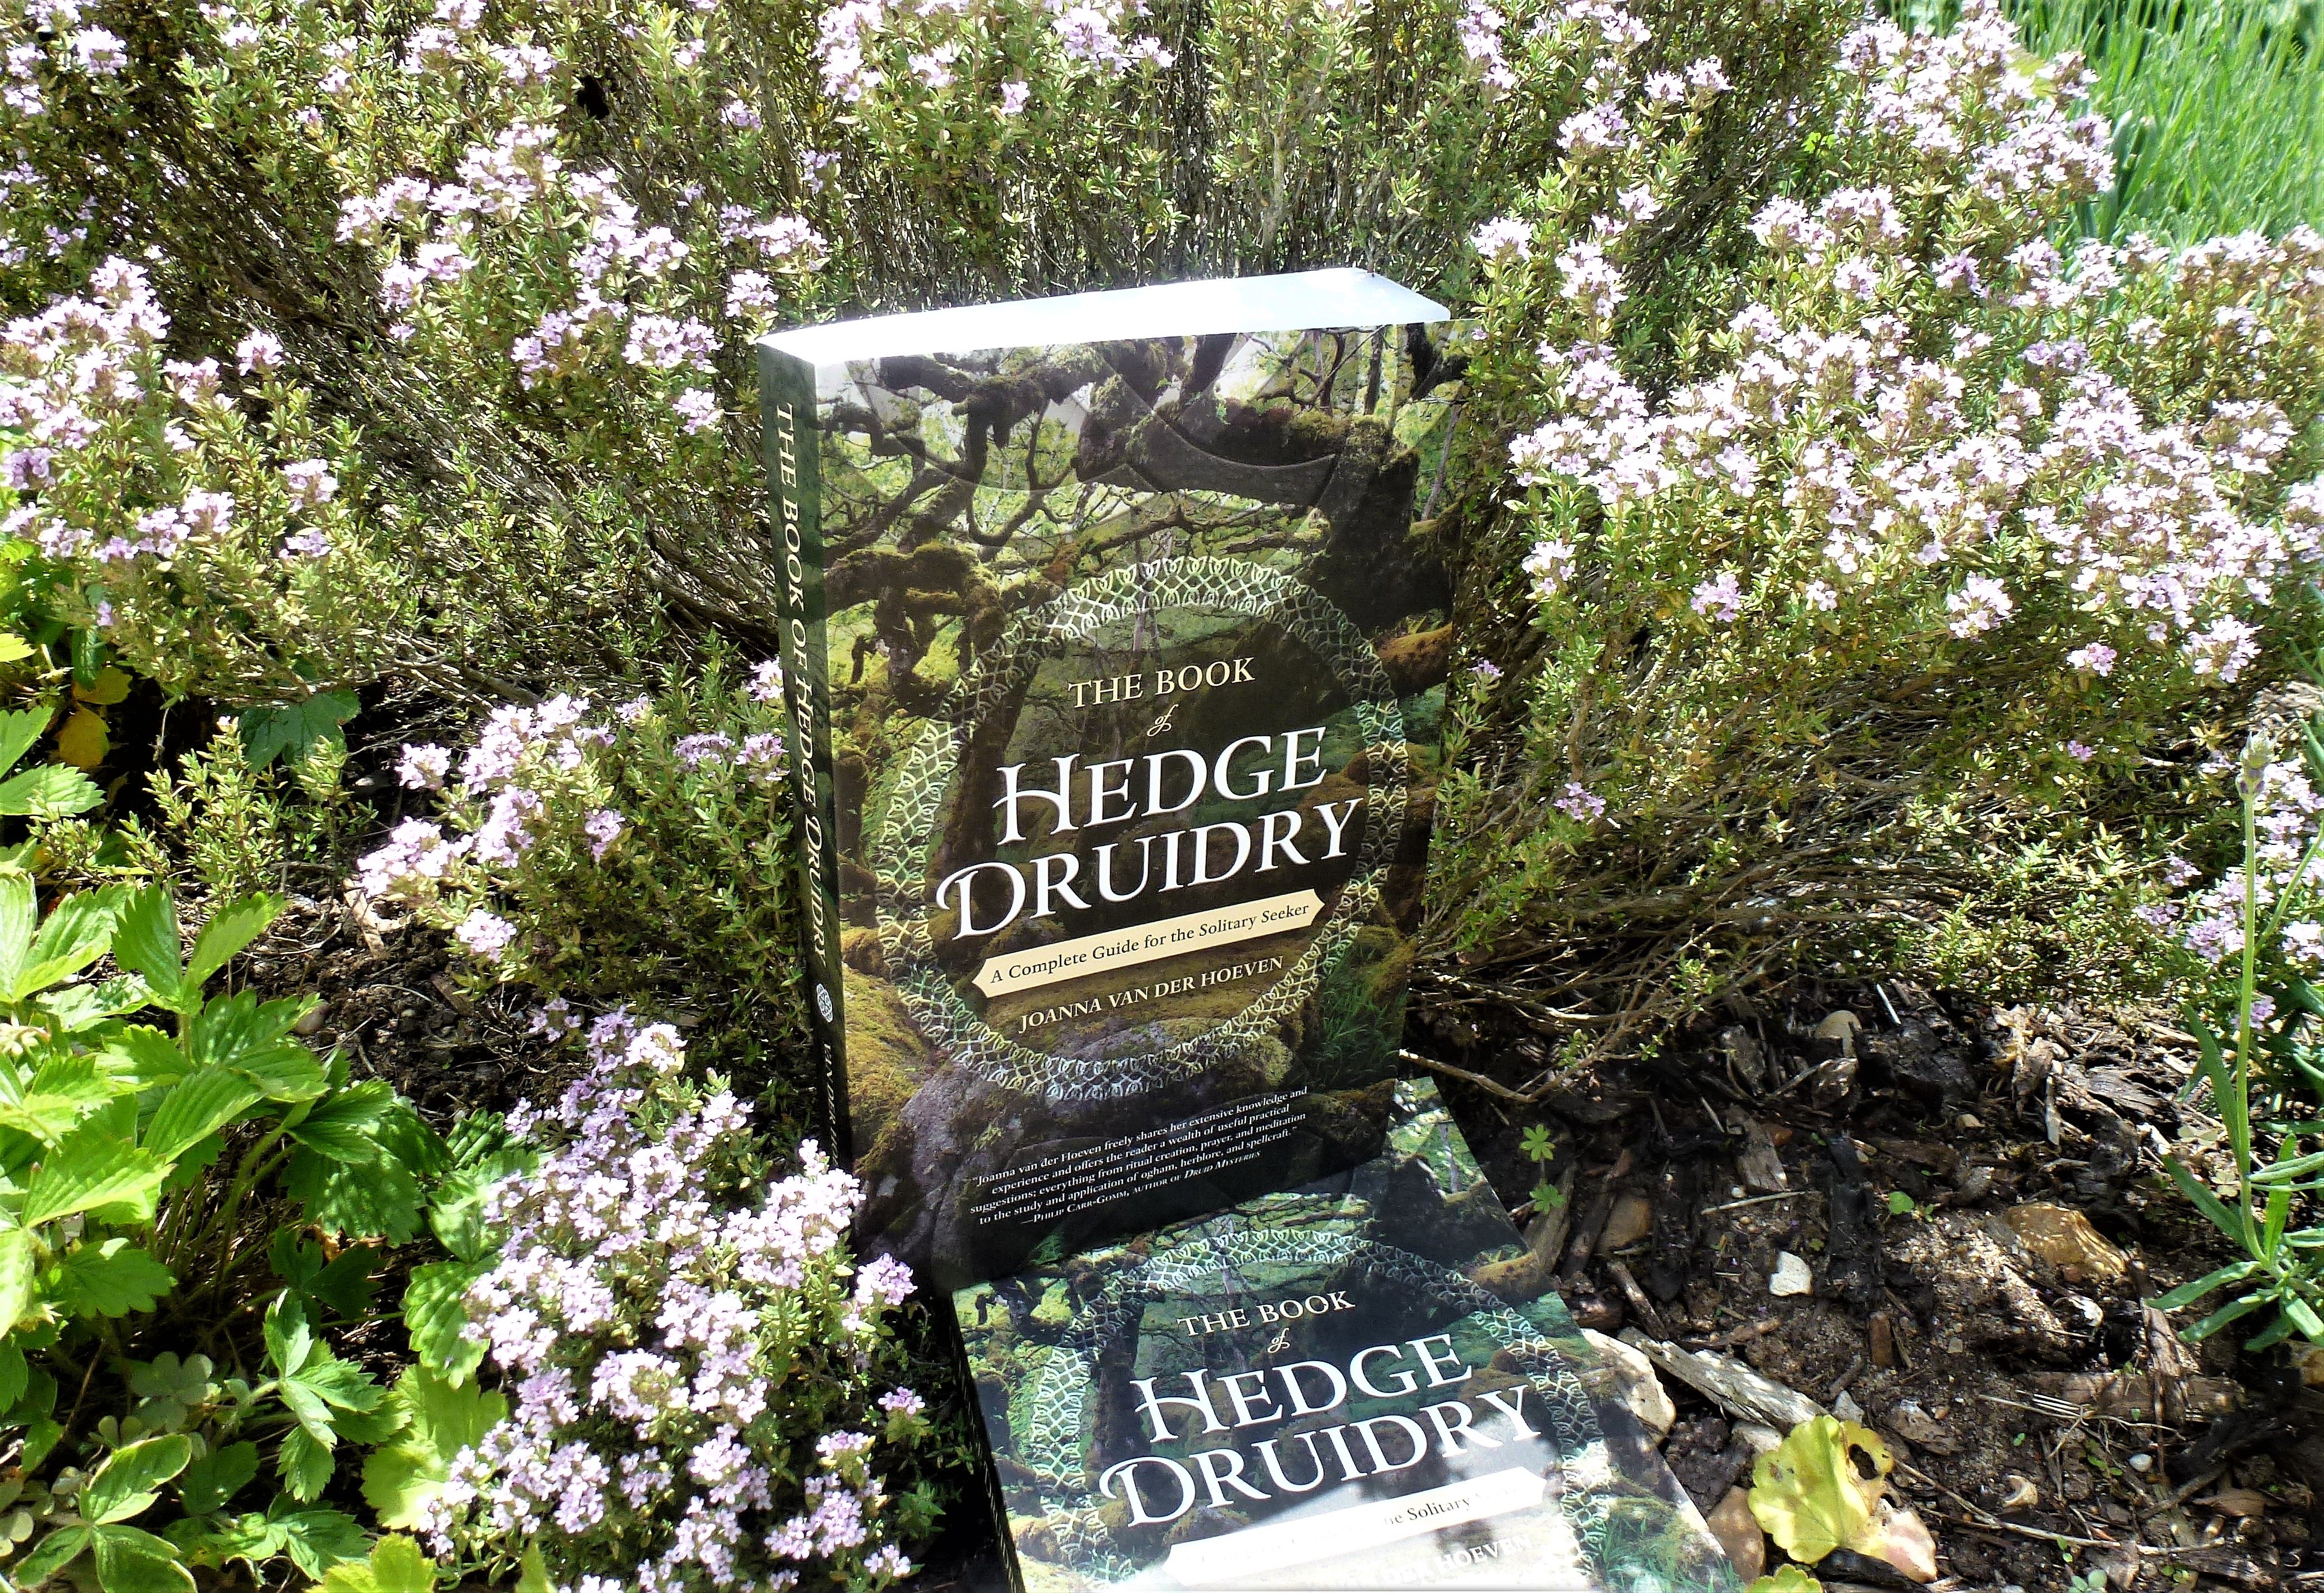 Prize Draw for The Book of Hedge Druidry! – Down the Forest Path